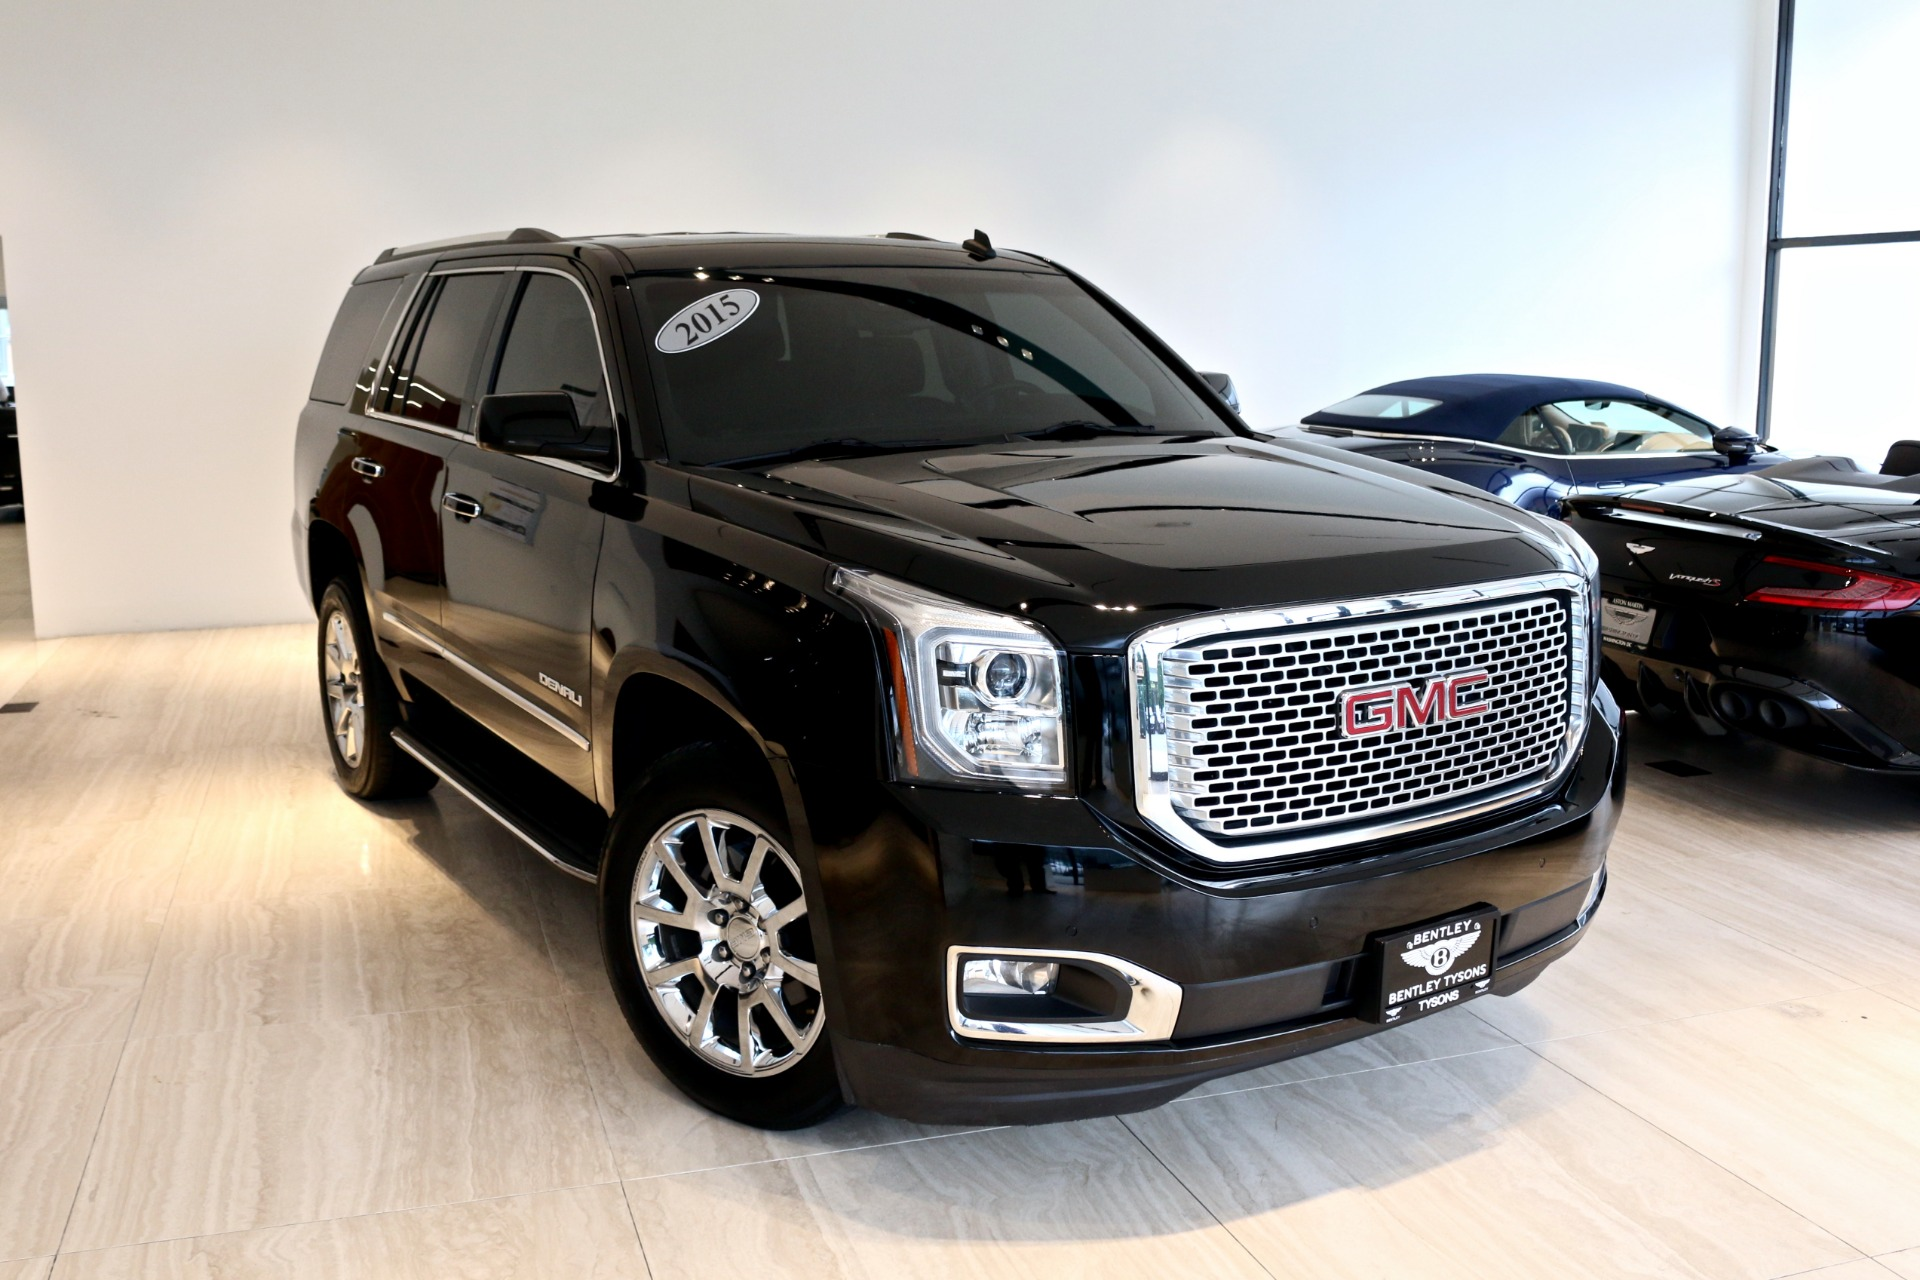 2015 Gmc Yukon Denali Stock P154651 For Sale Near Vienna Va Used